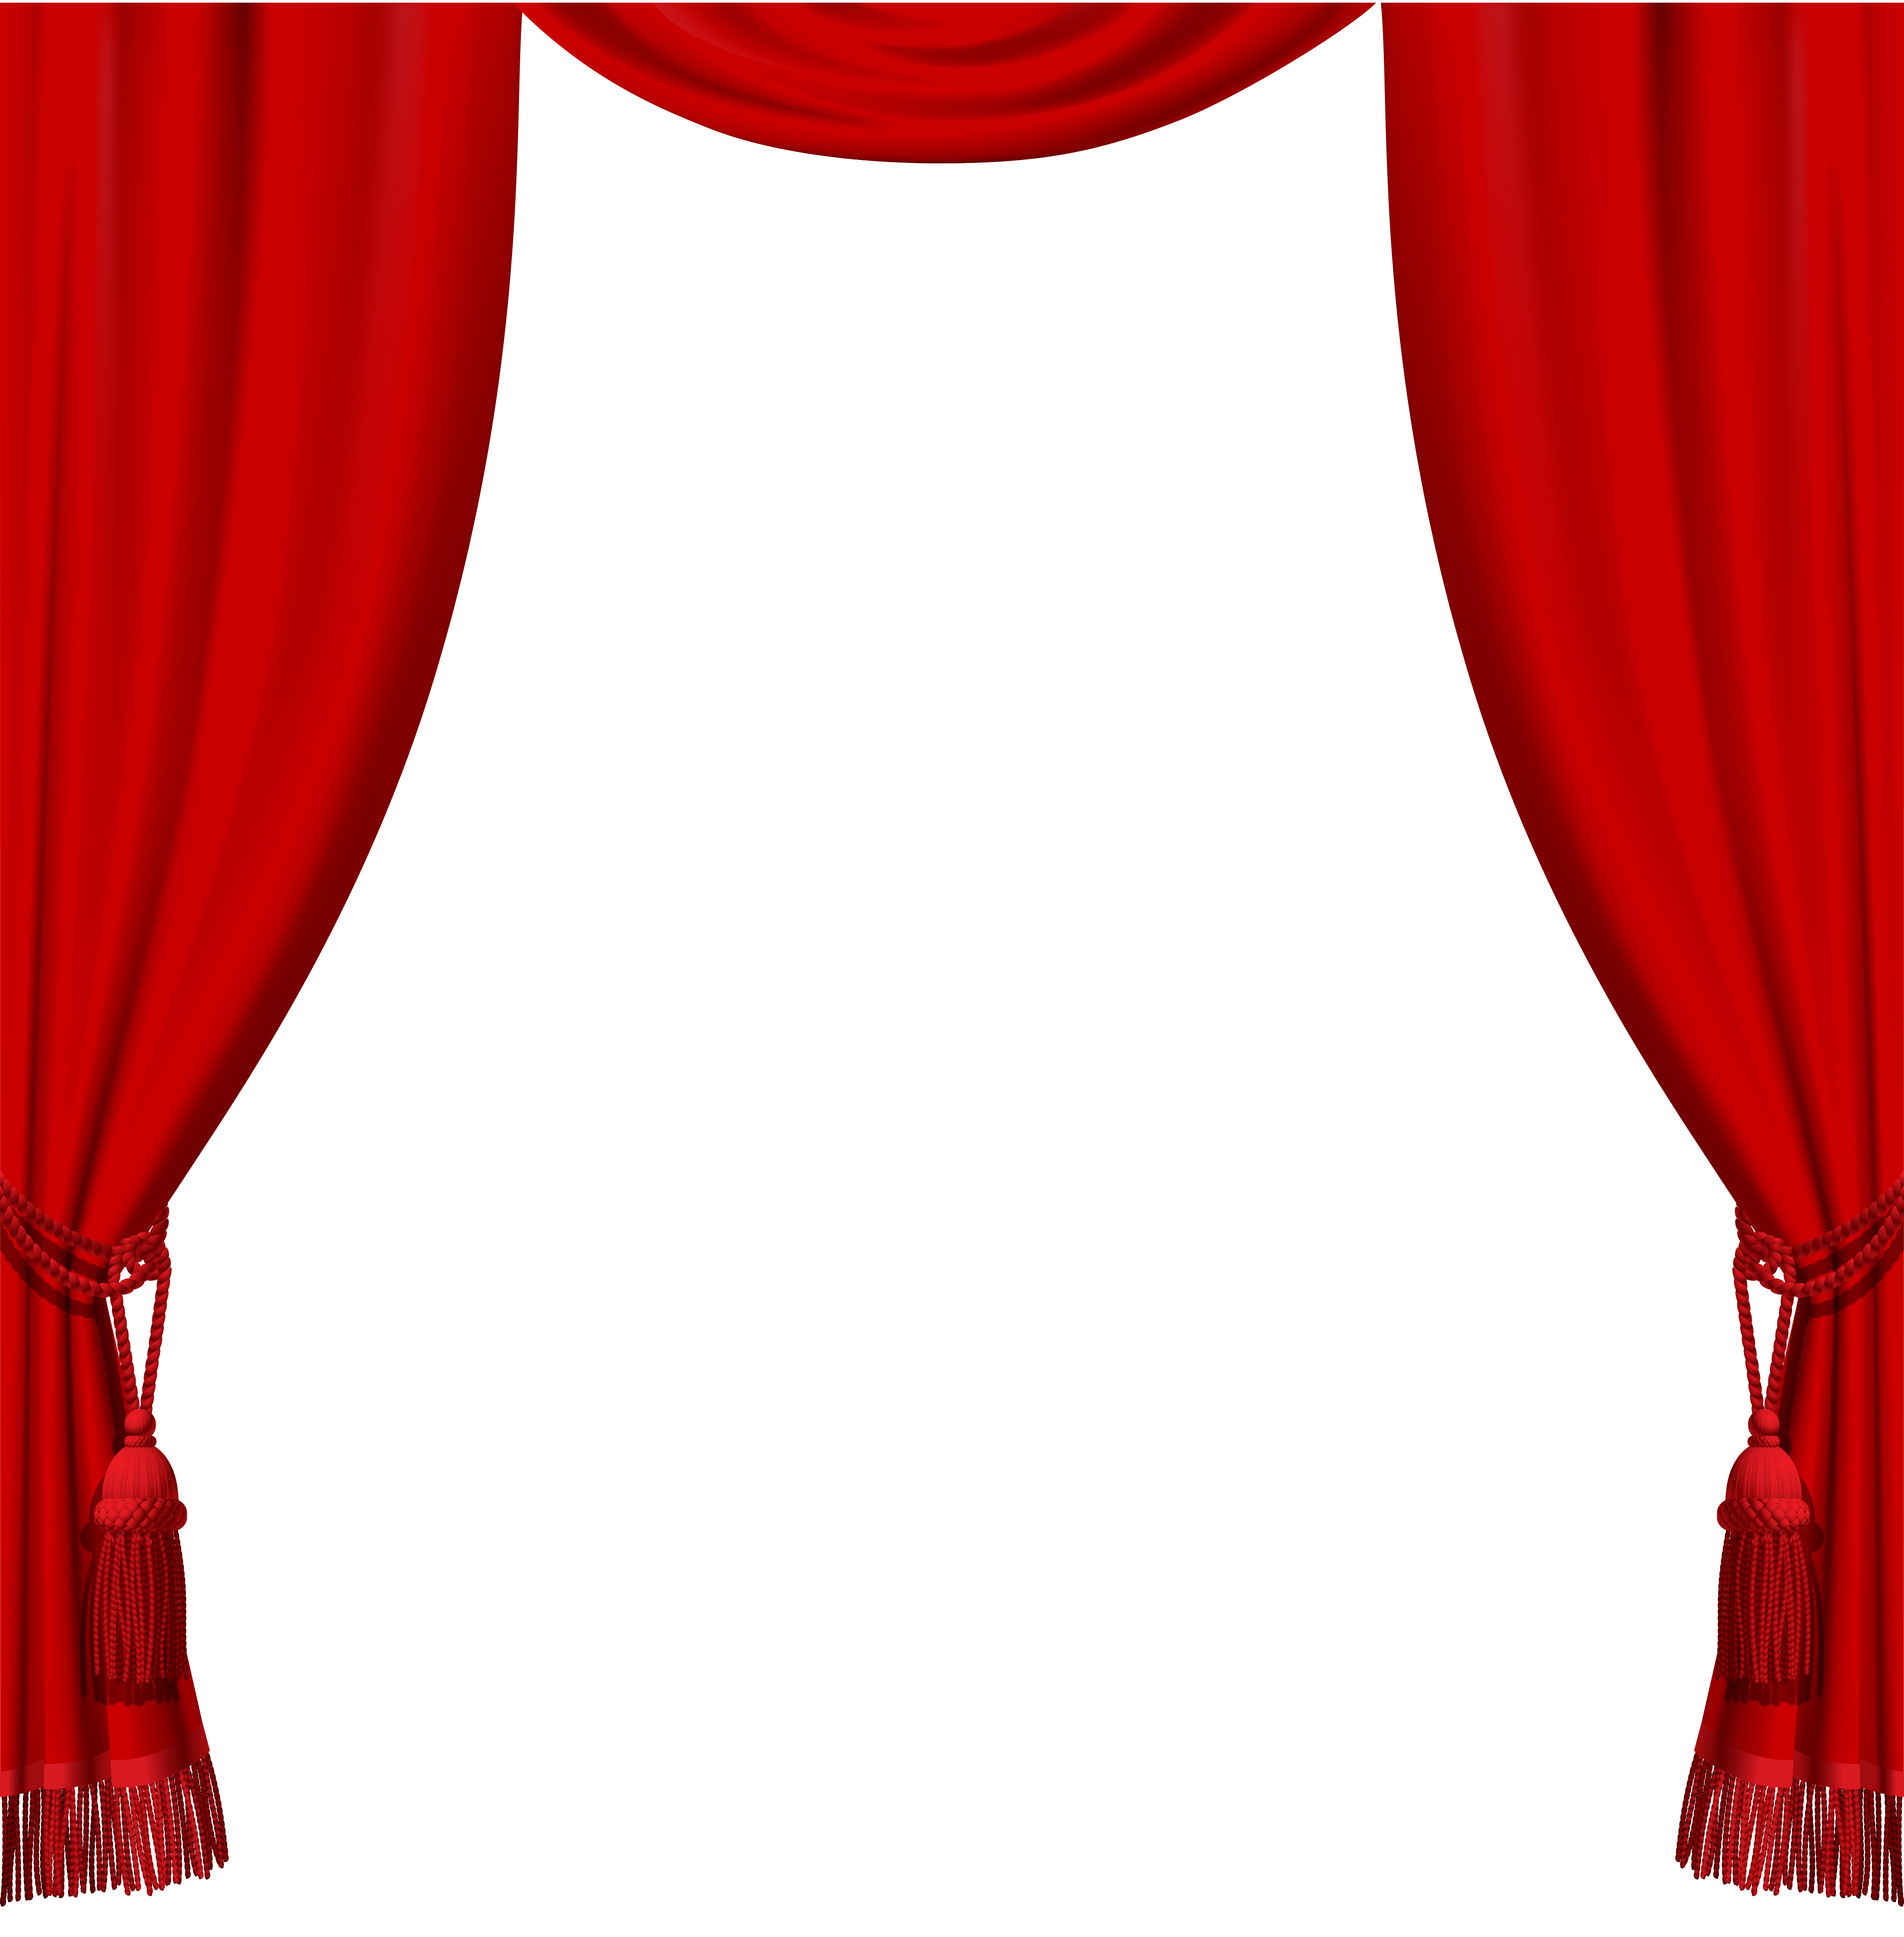 Win clipart curtain clipart. Transparent red curtains with